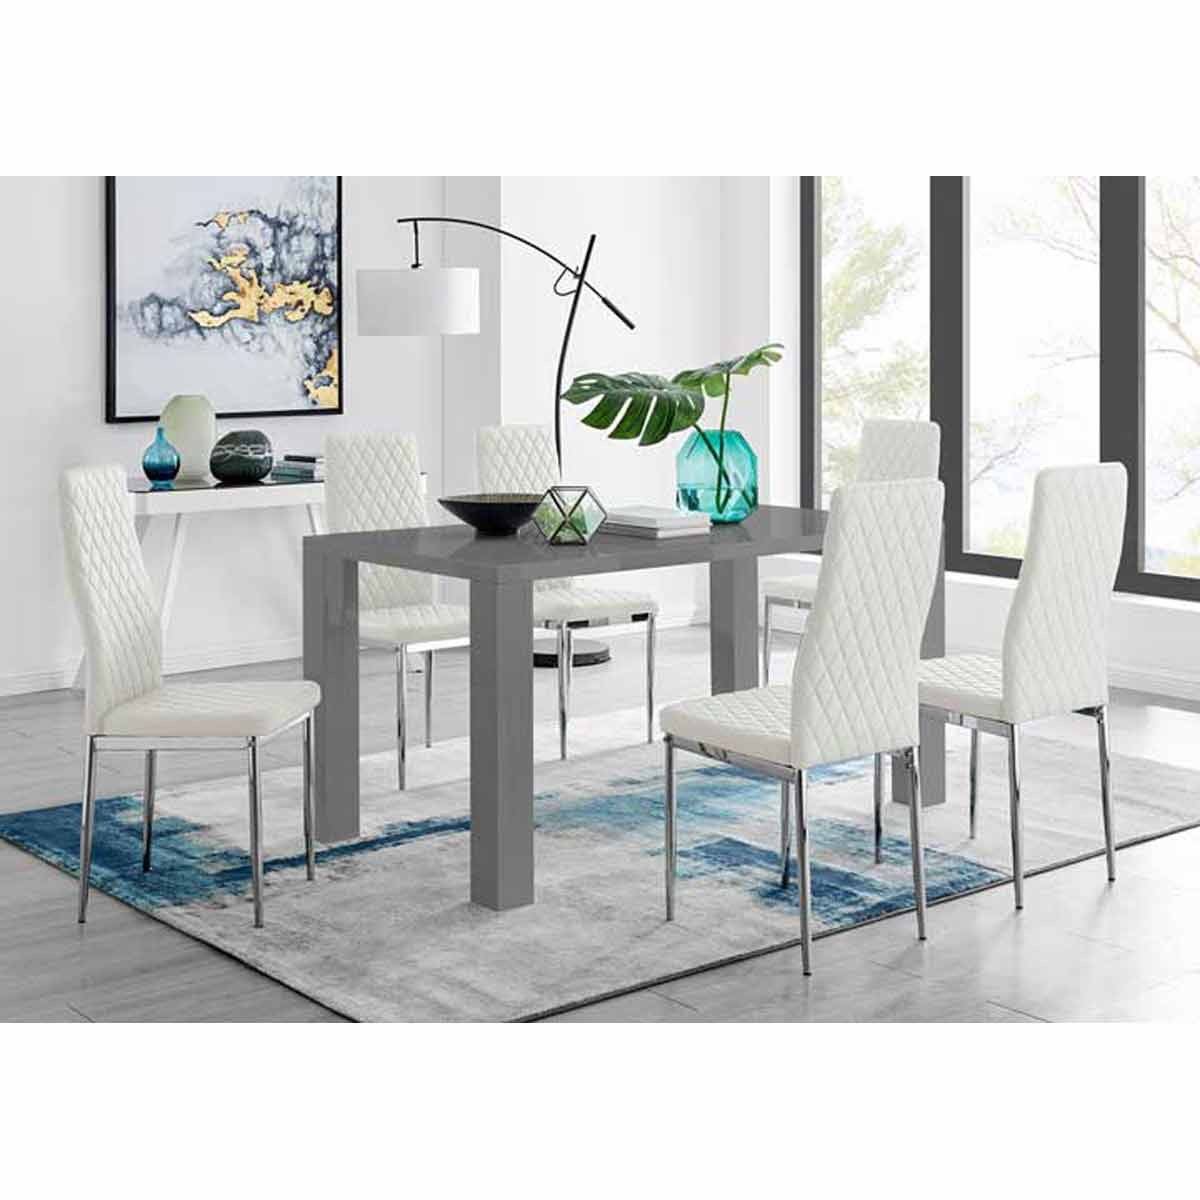 Furniture Box Pivero Grey High Gloss Dining Table And 6 Modern White Milan Chairs Set